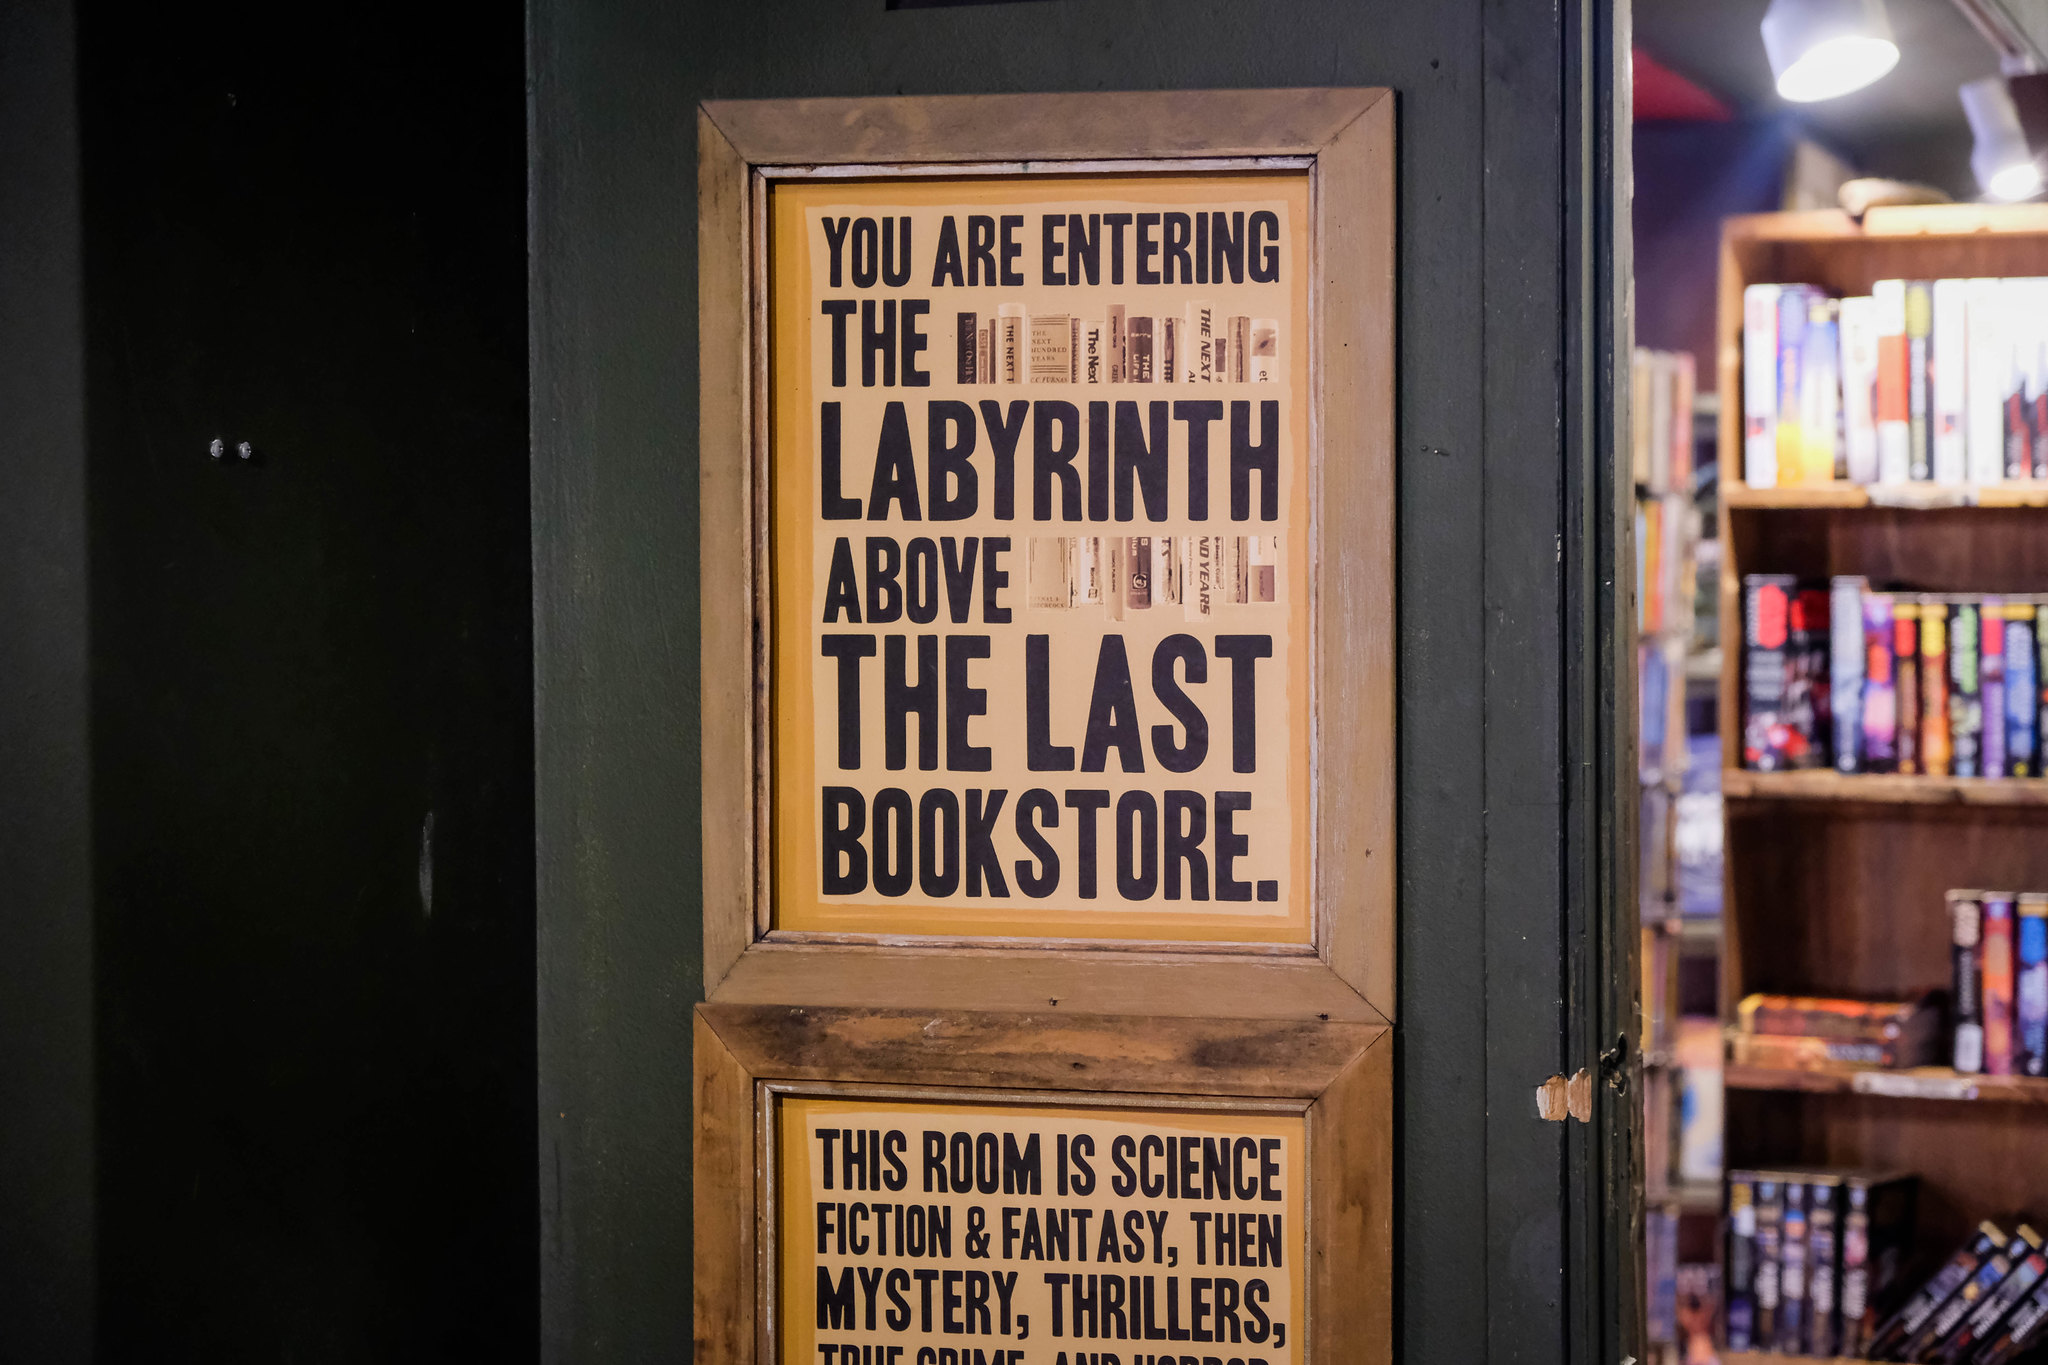 Book labyrinth!